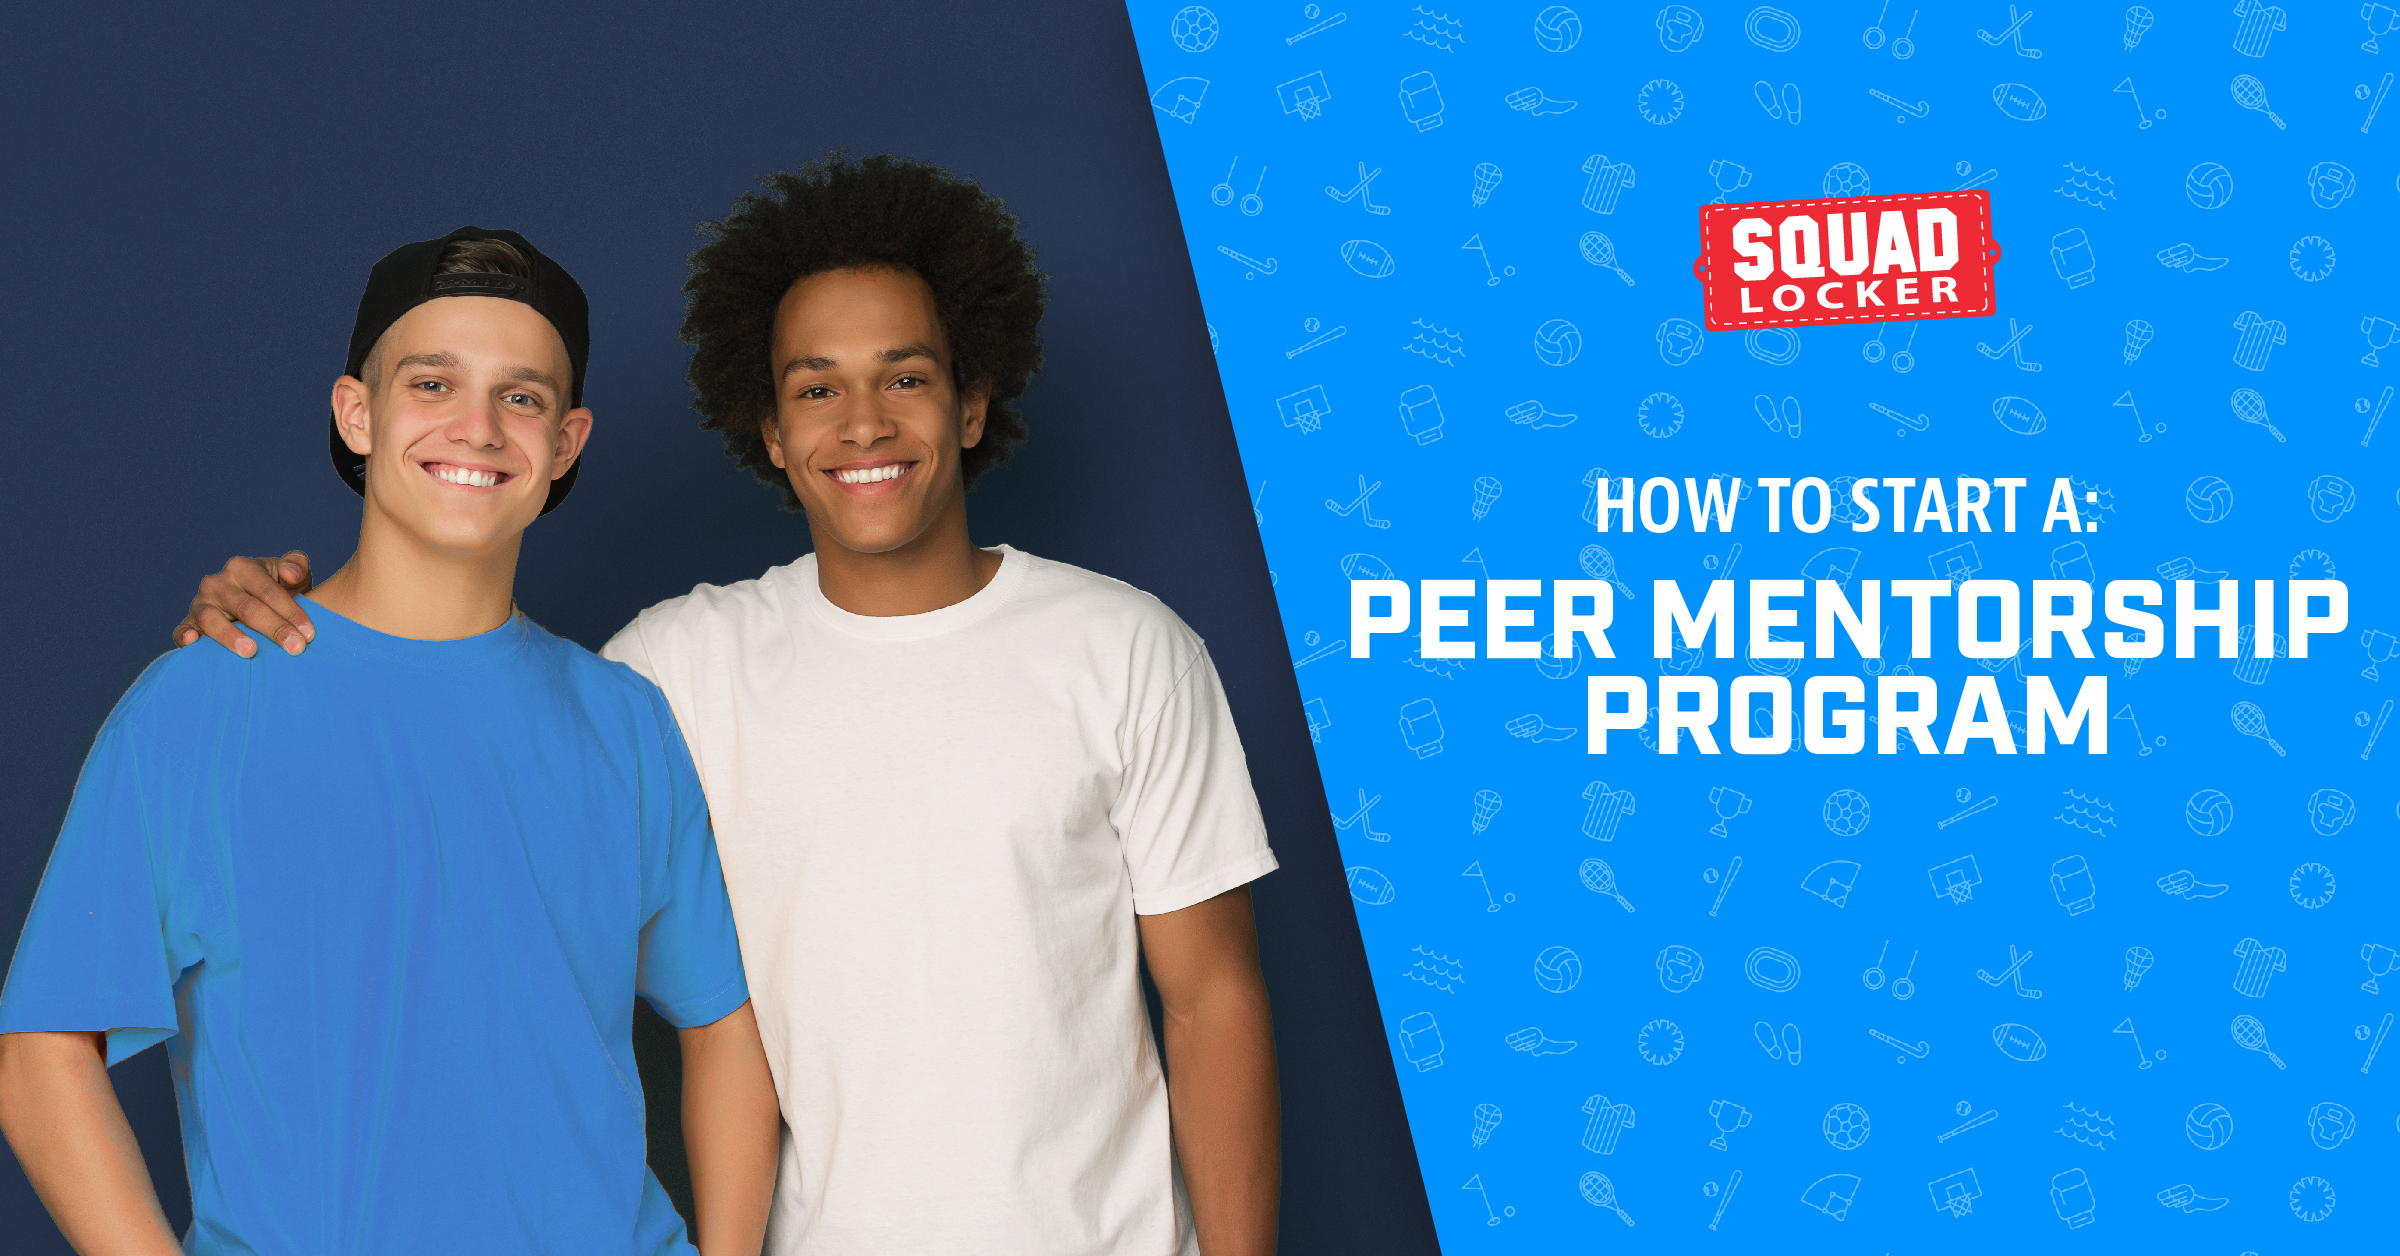 How to start a peer mentorship program